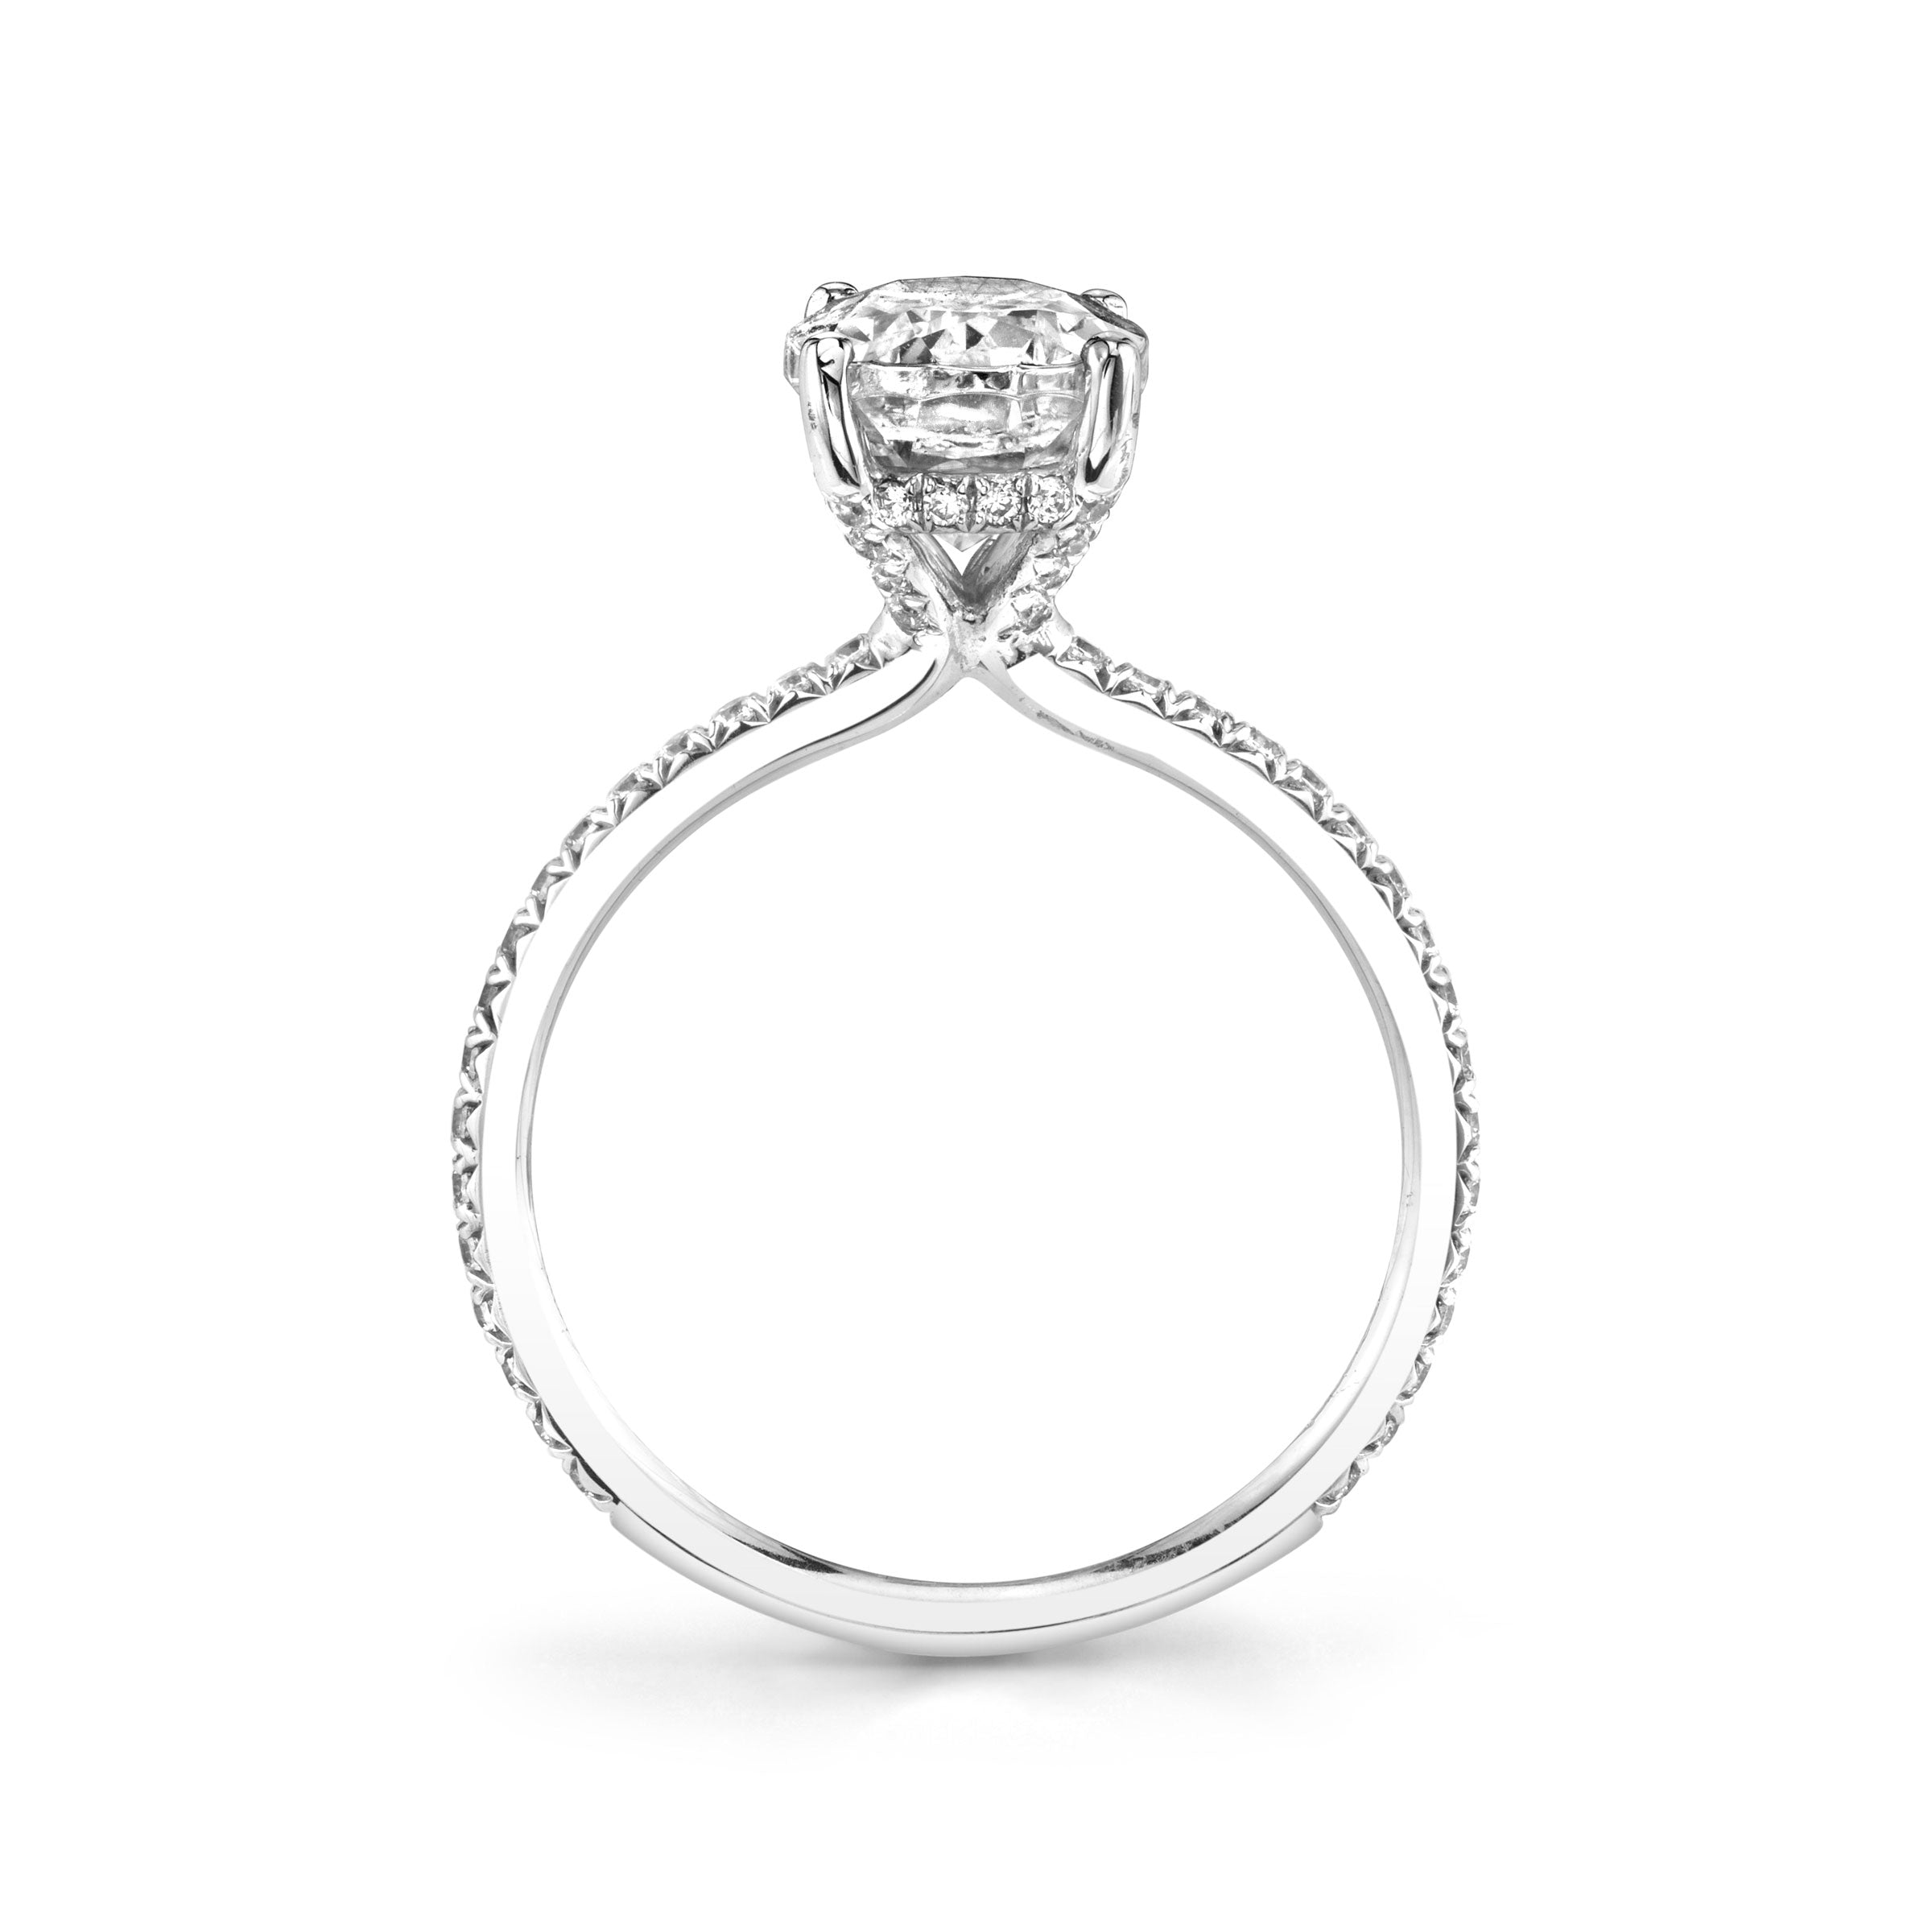 Diamond Engagement Ring by Sylvie, .80 Carat Center, 14K White Gold